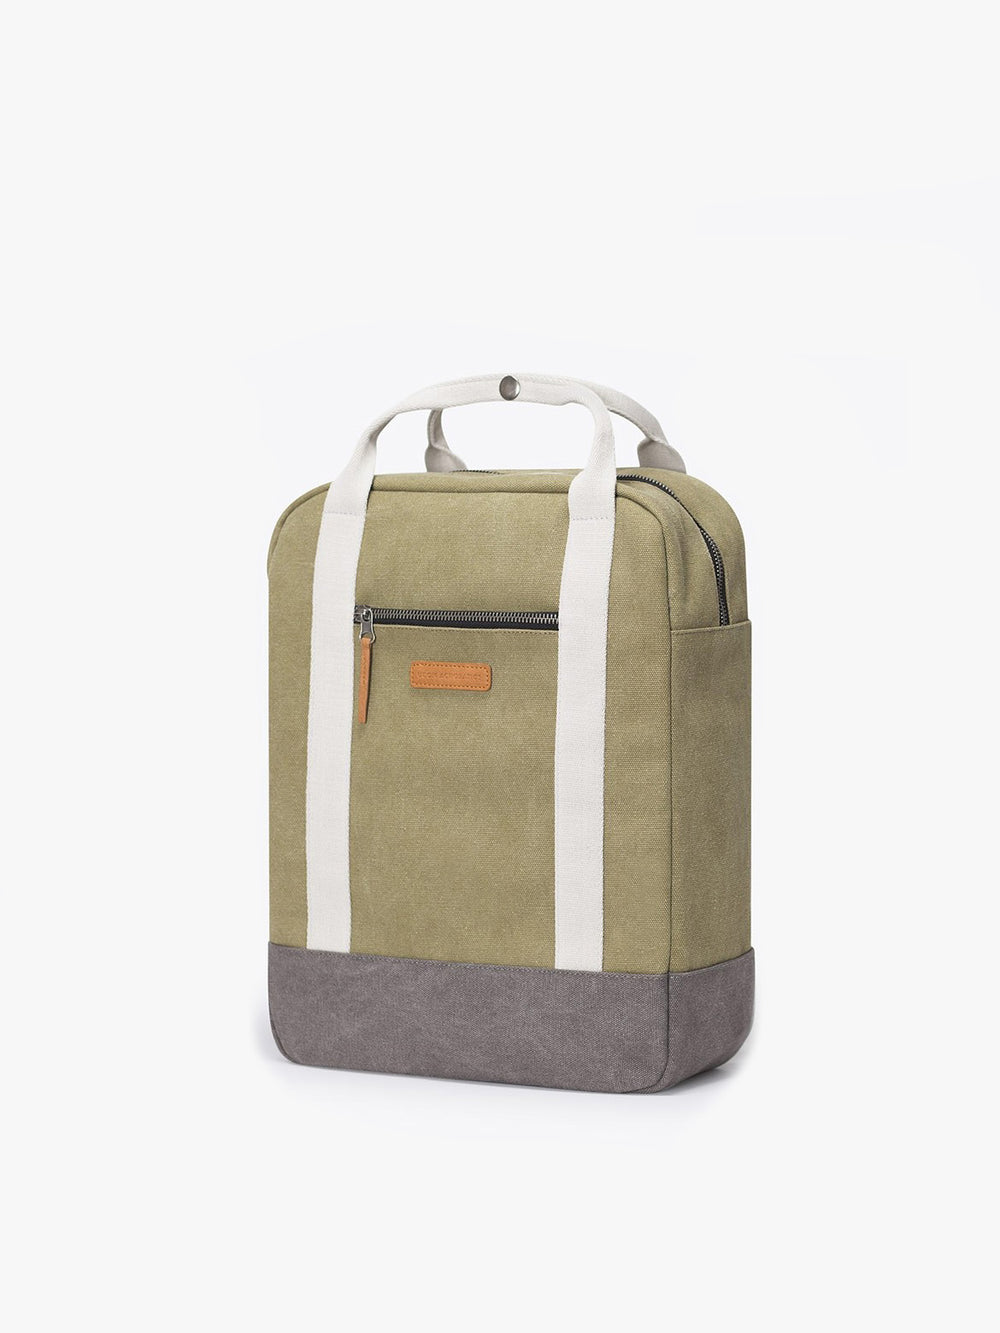 Compact Ison backpack designed in Berlin